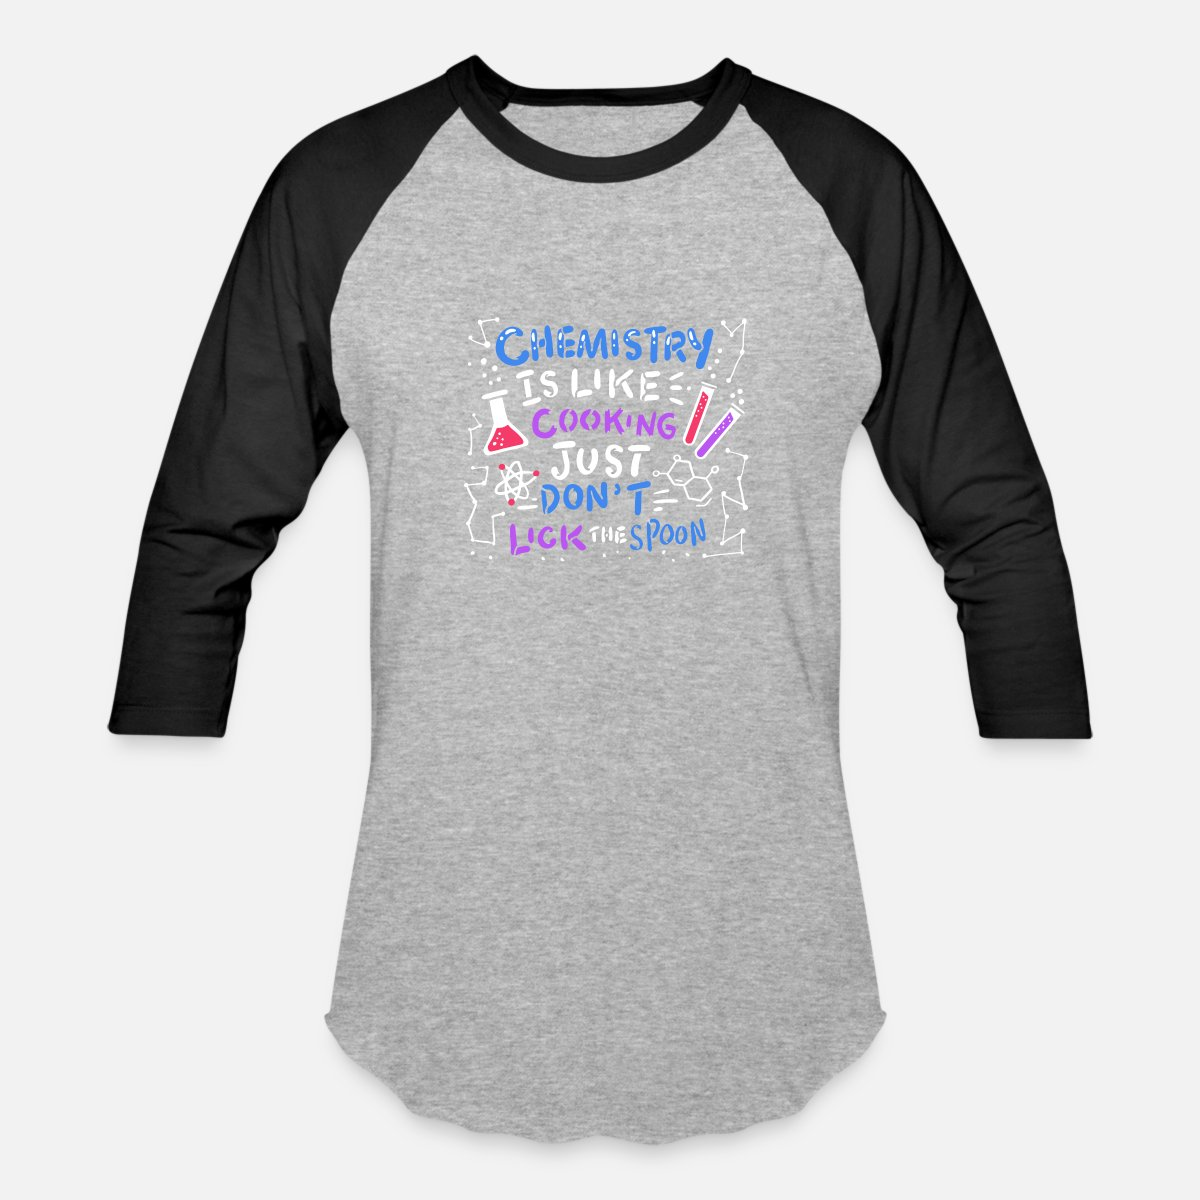 a523a518 Funny Chemistry T Shirt Design Gift Idea Unisex Baseball T Shirt